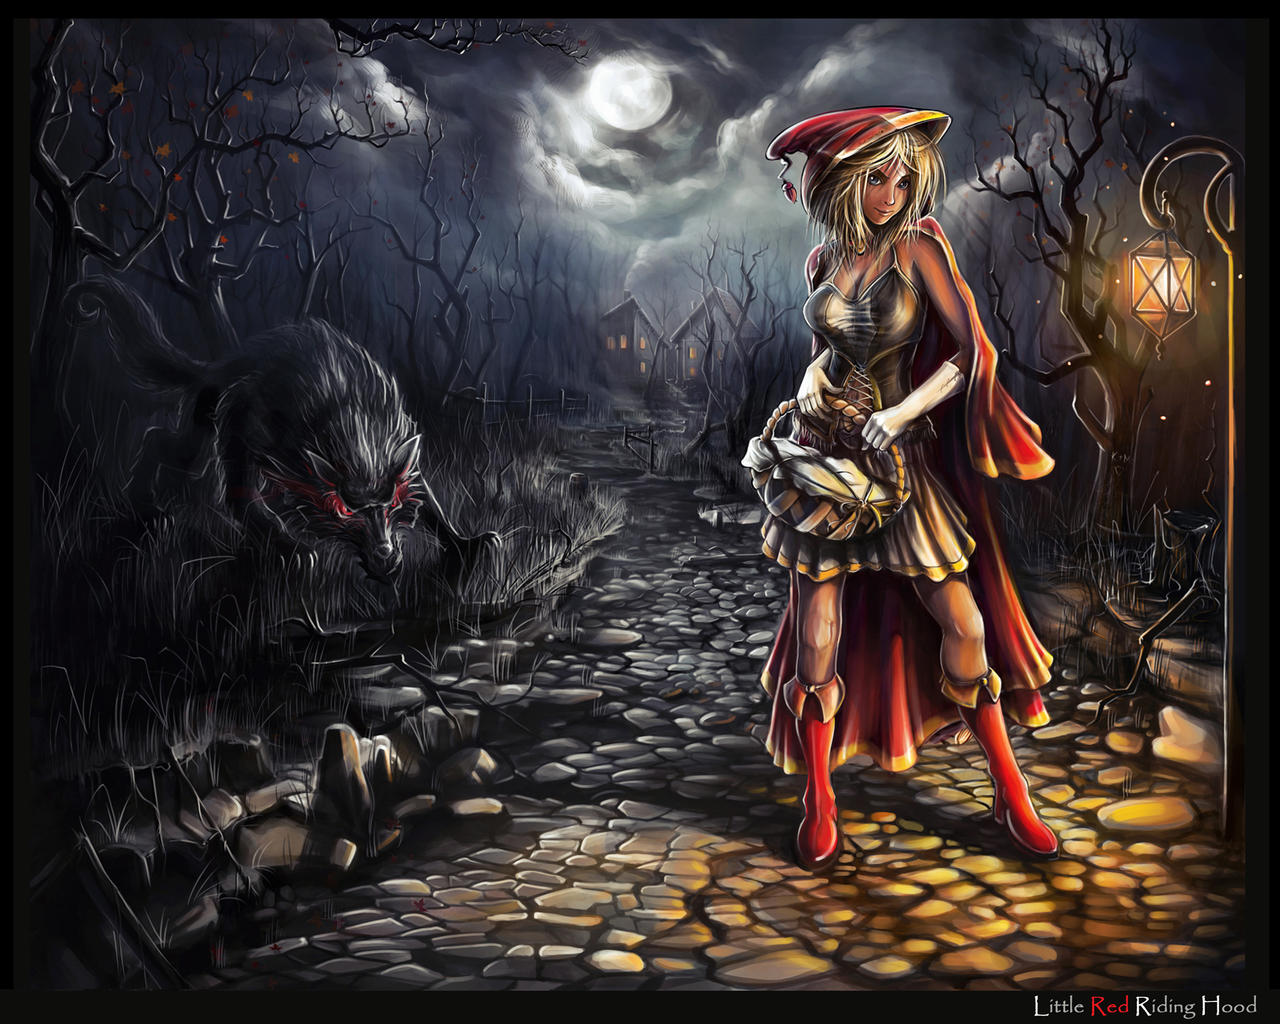 Little Red Riding Hood by haryarti